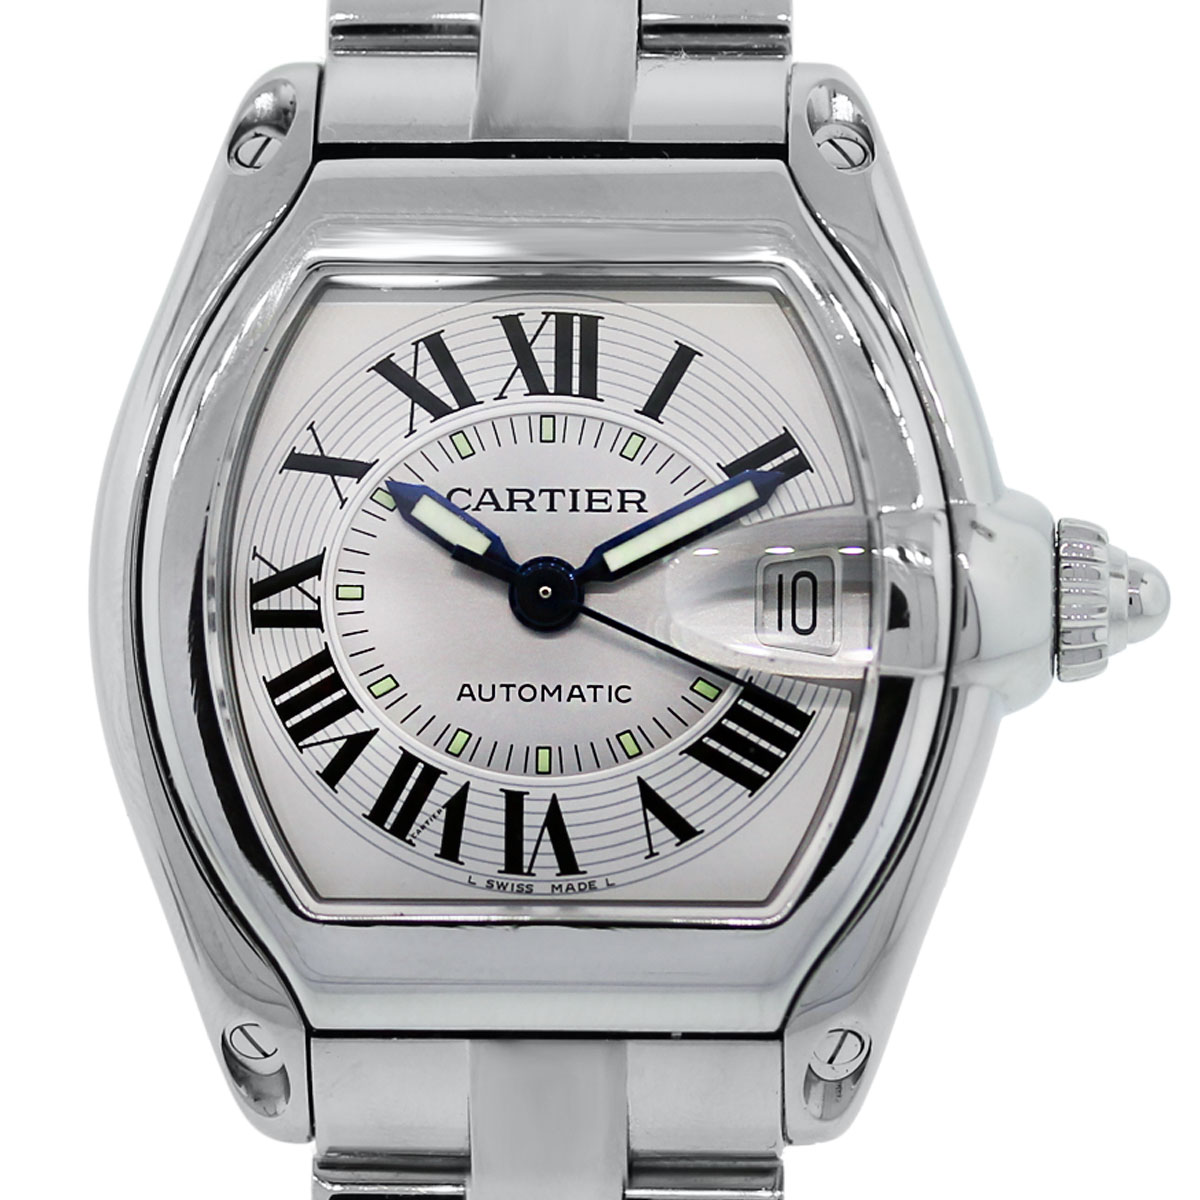 Cartier Watches Cartier Roadster 2510 Stainless Steel Silver Dial Watch